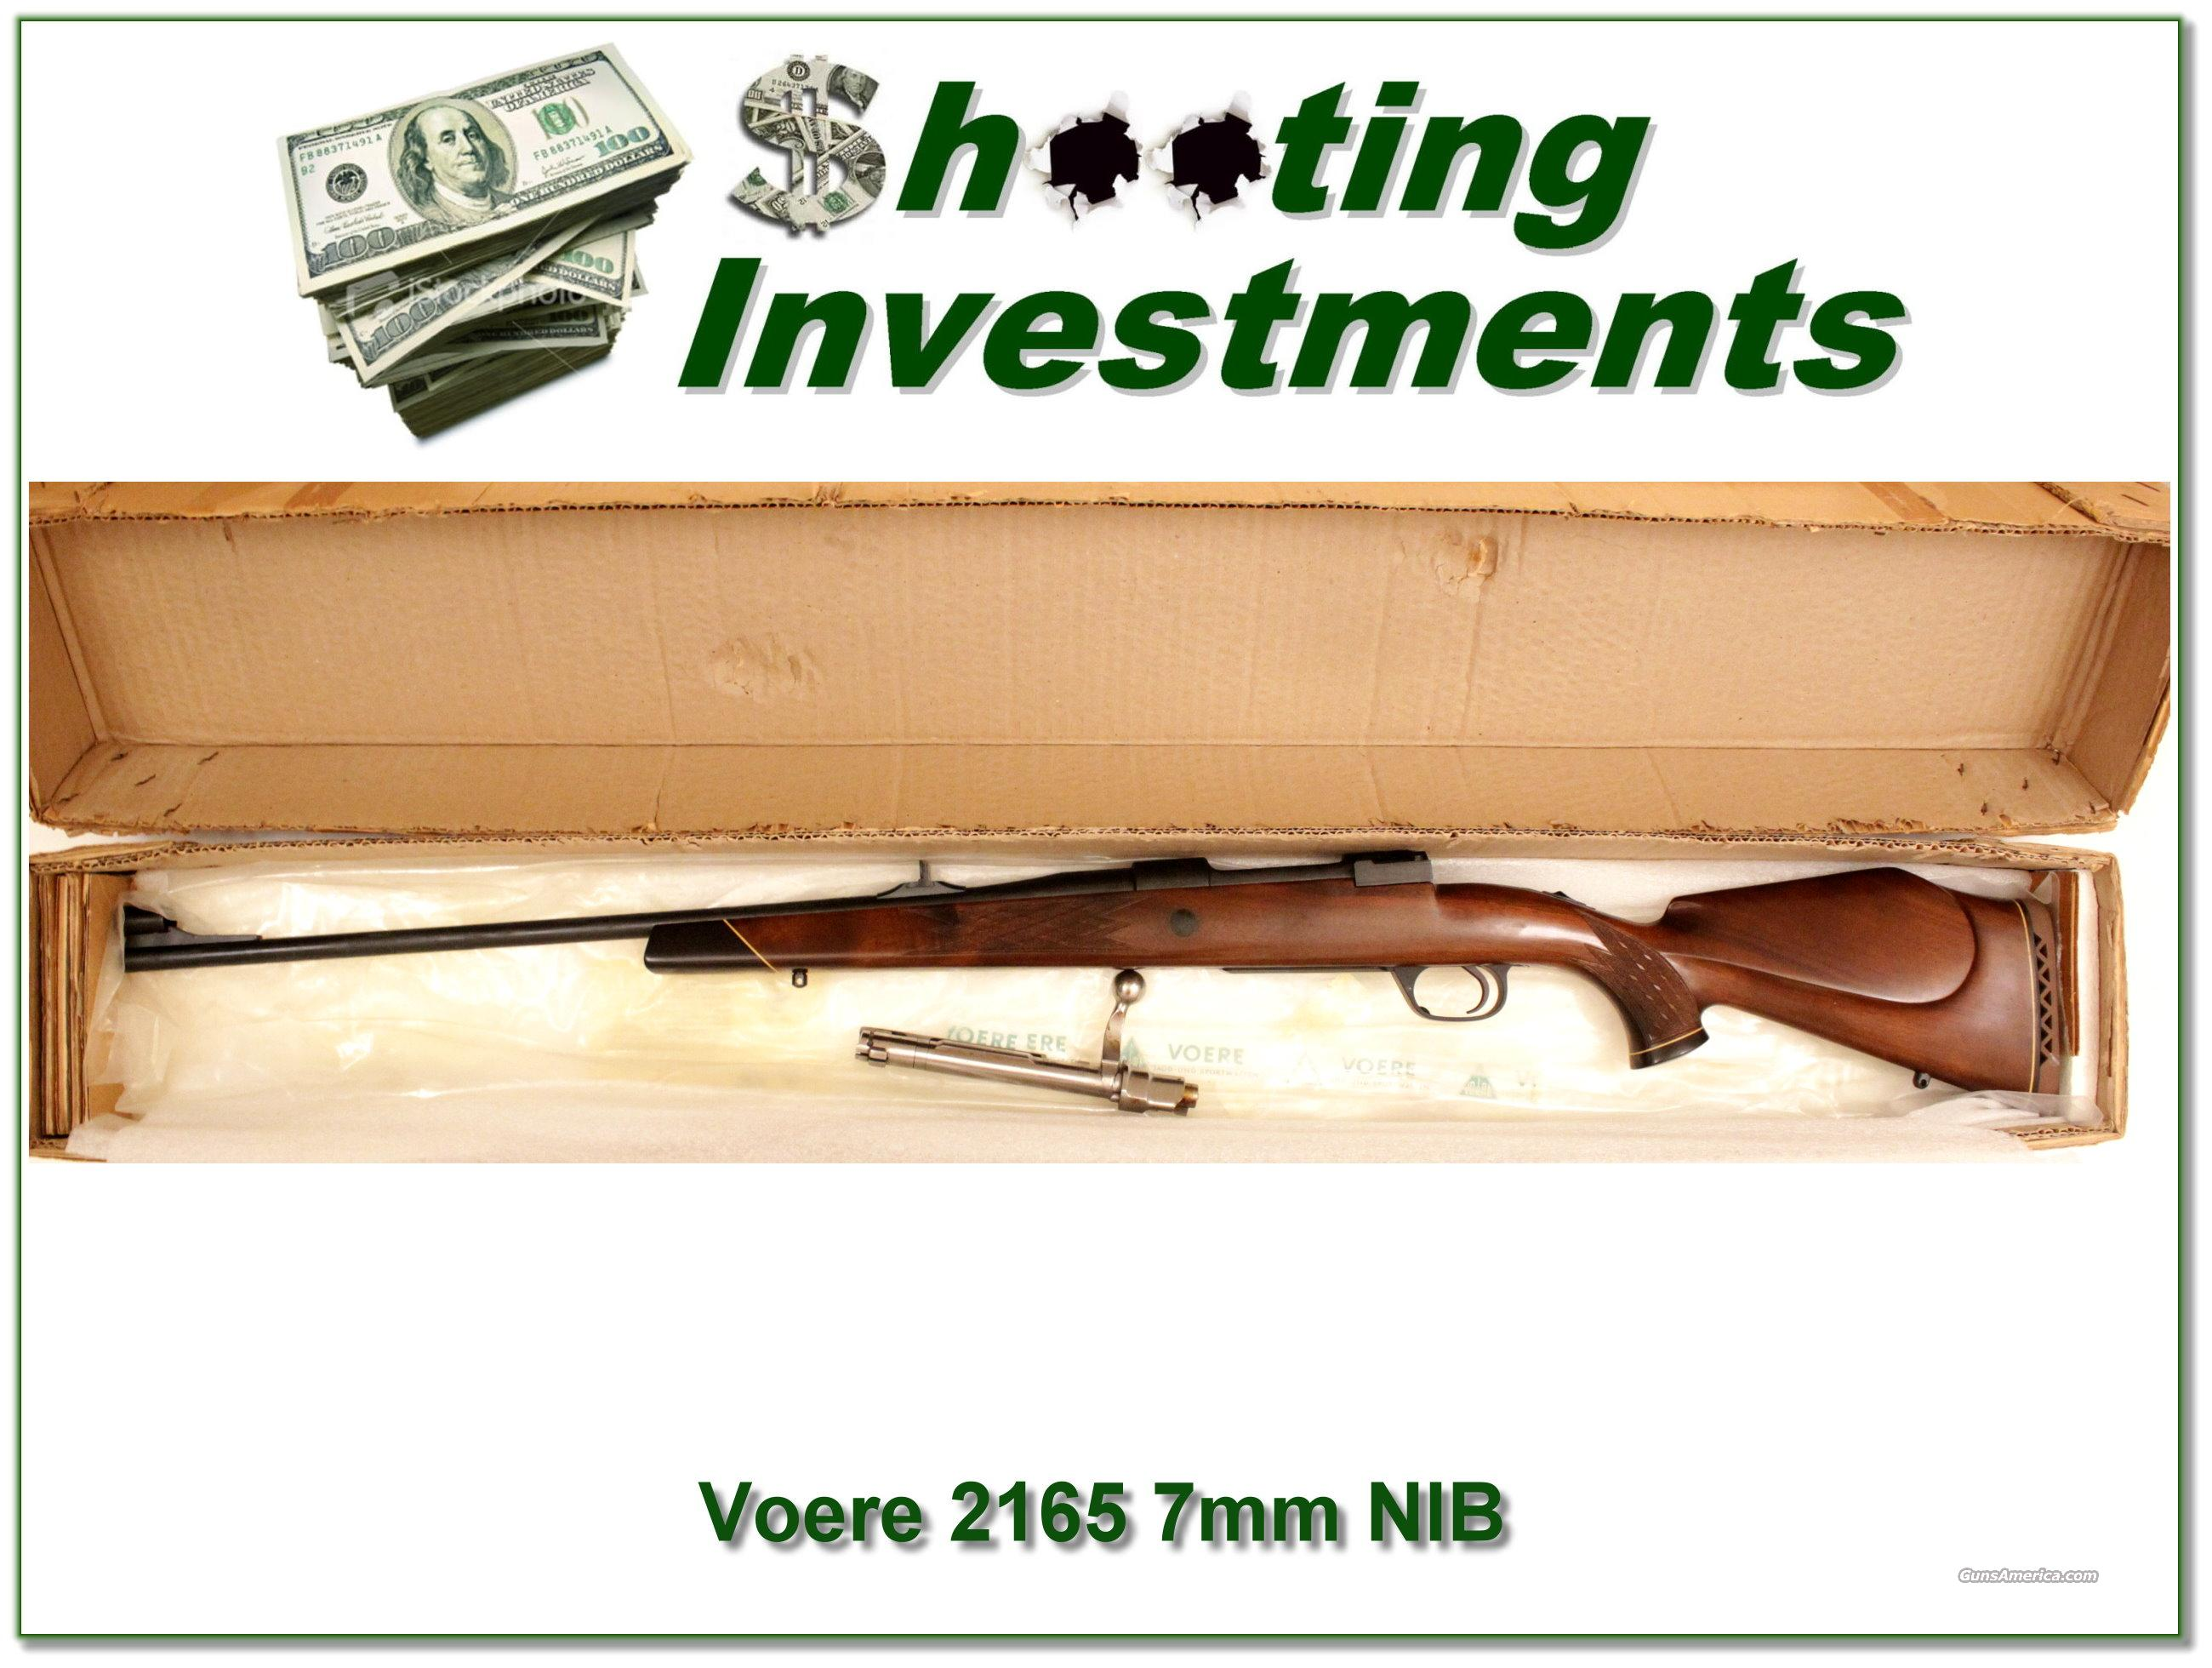 Voere Model 2165 Mauser in 7mm Rem Mag NIB  Guns > Rifles > Voere Rifles